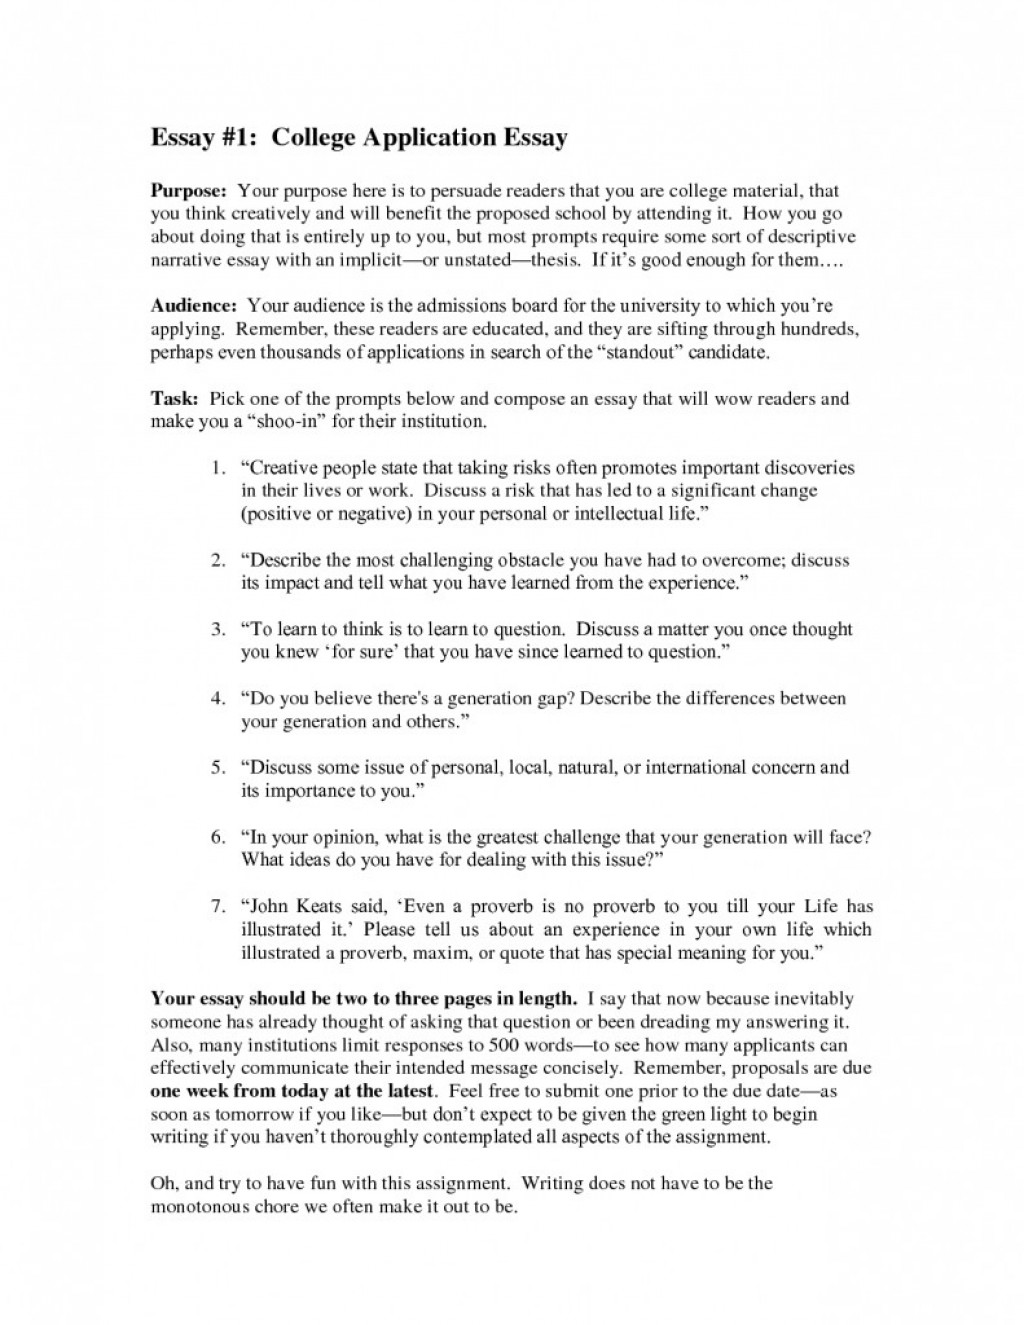 004 College Application Essay 791x1024 Writing Imposing Prompts Tips Large